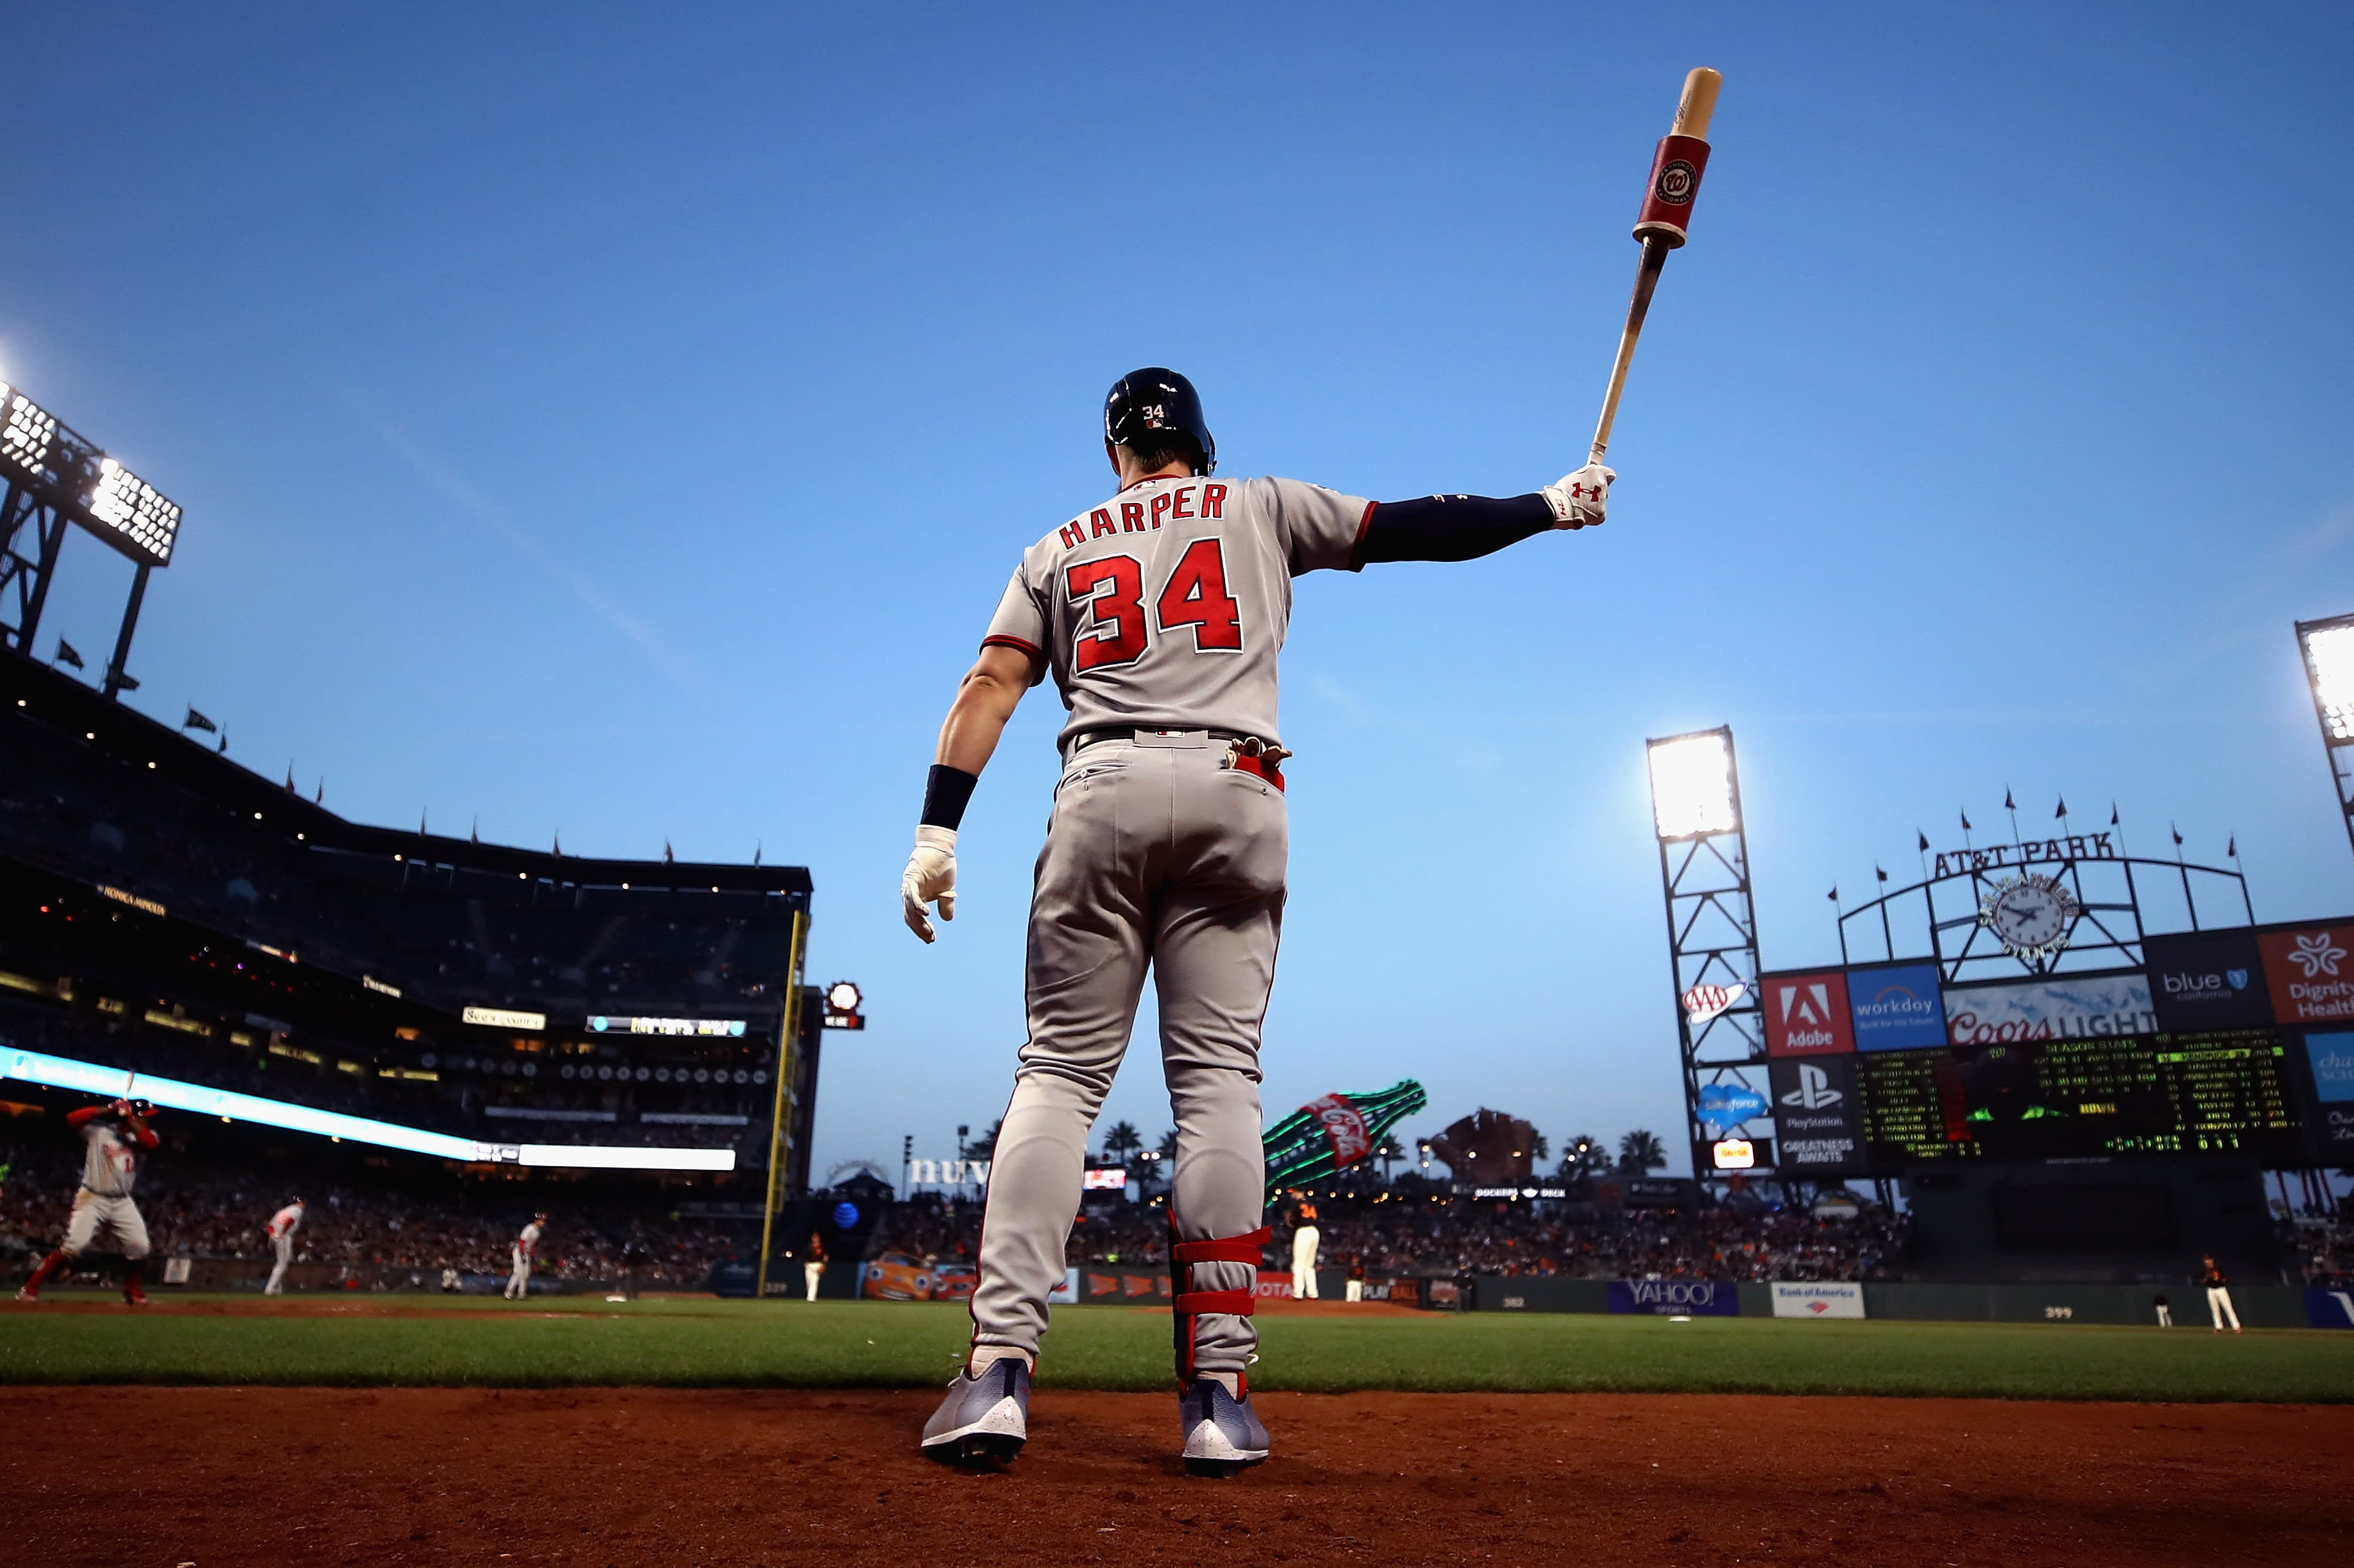 MLB teams drop big money on star players in chase for playoffs, revenue